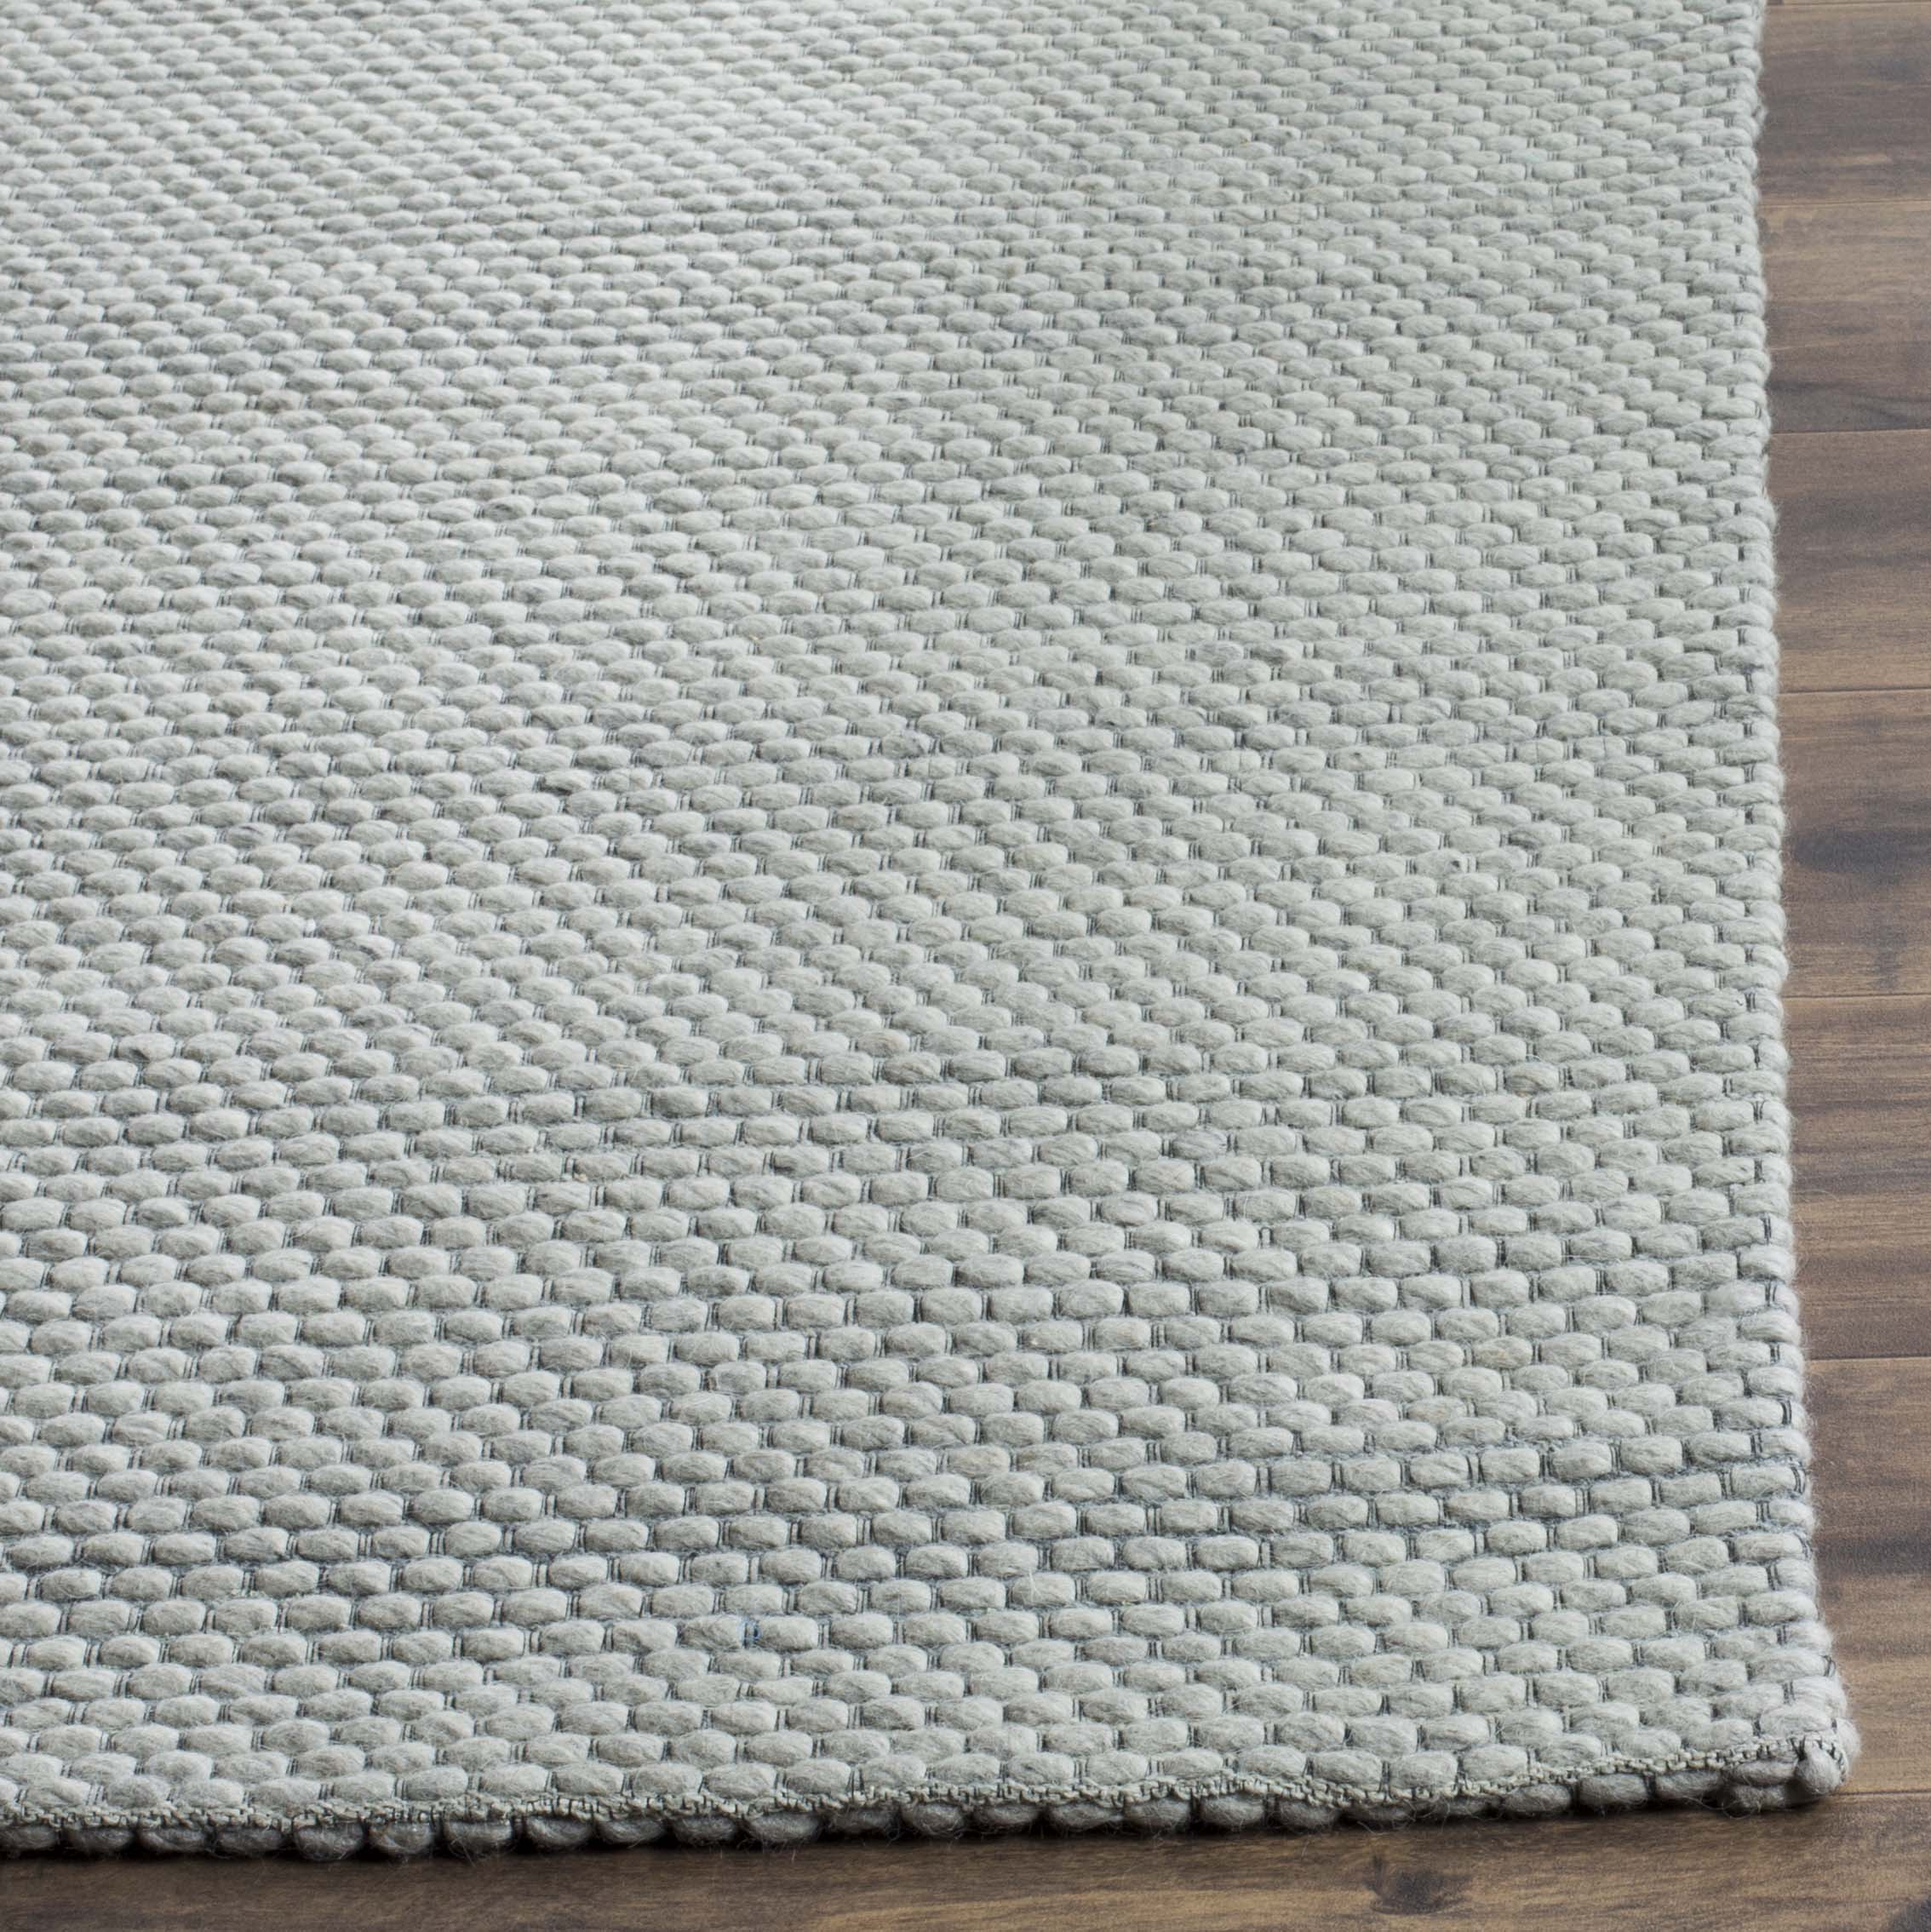 Chipley 801 6' X 6' Square Gray Wool Rug